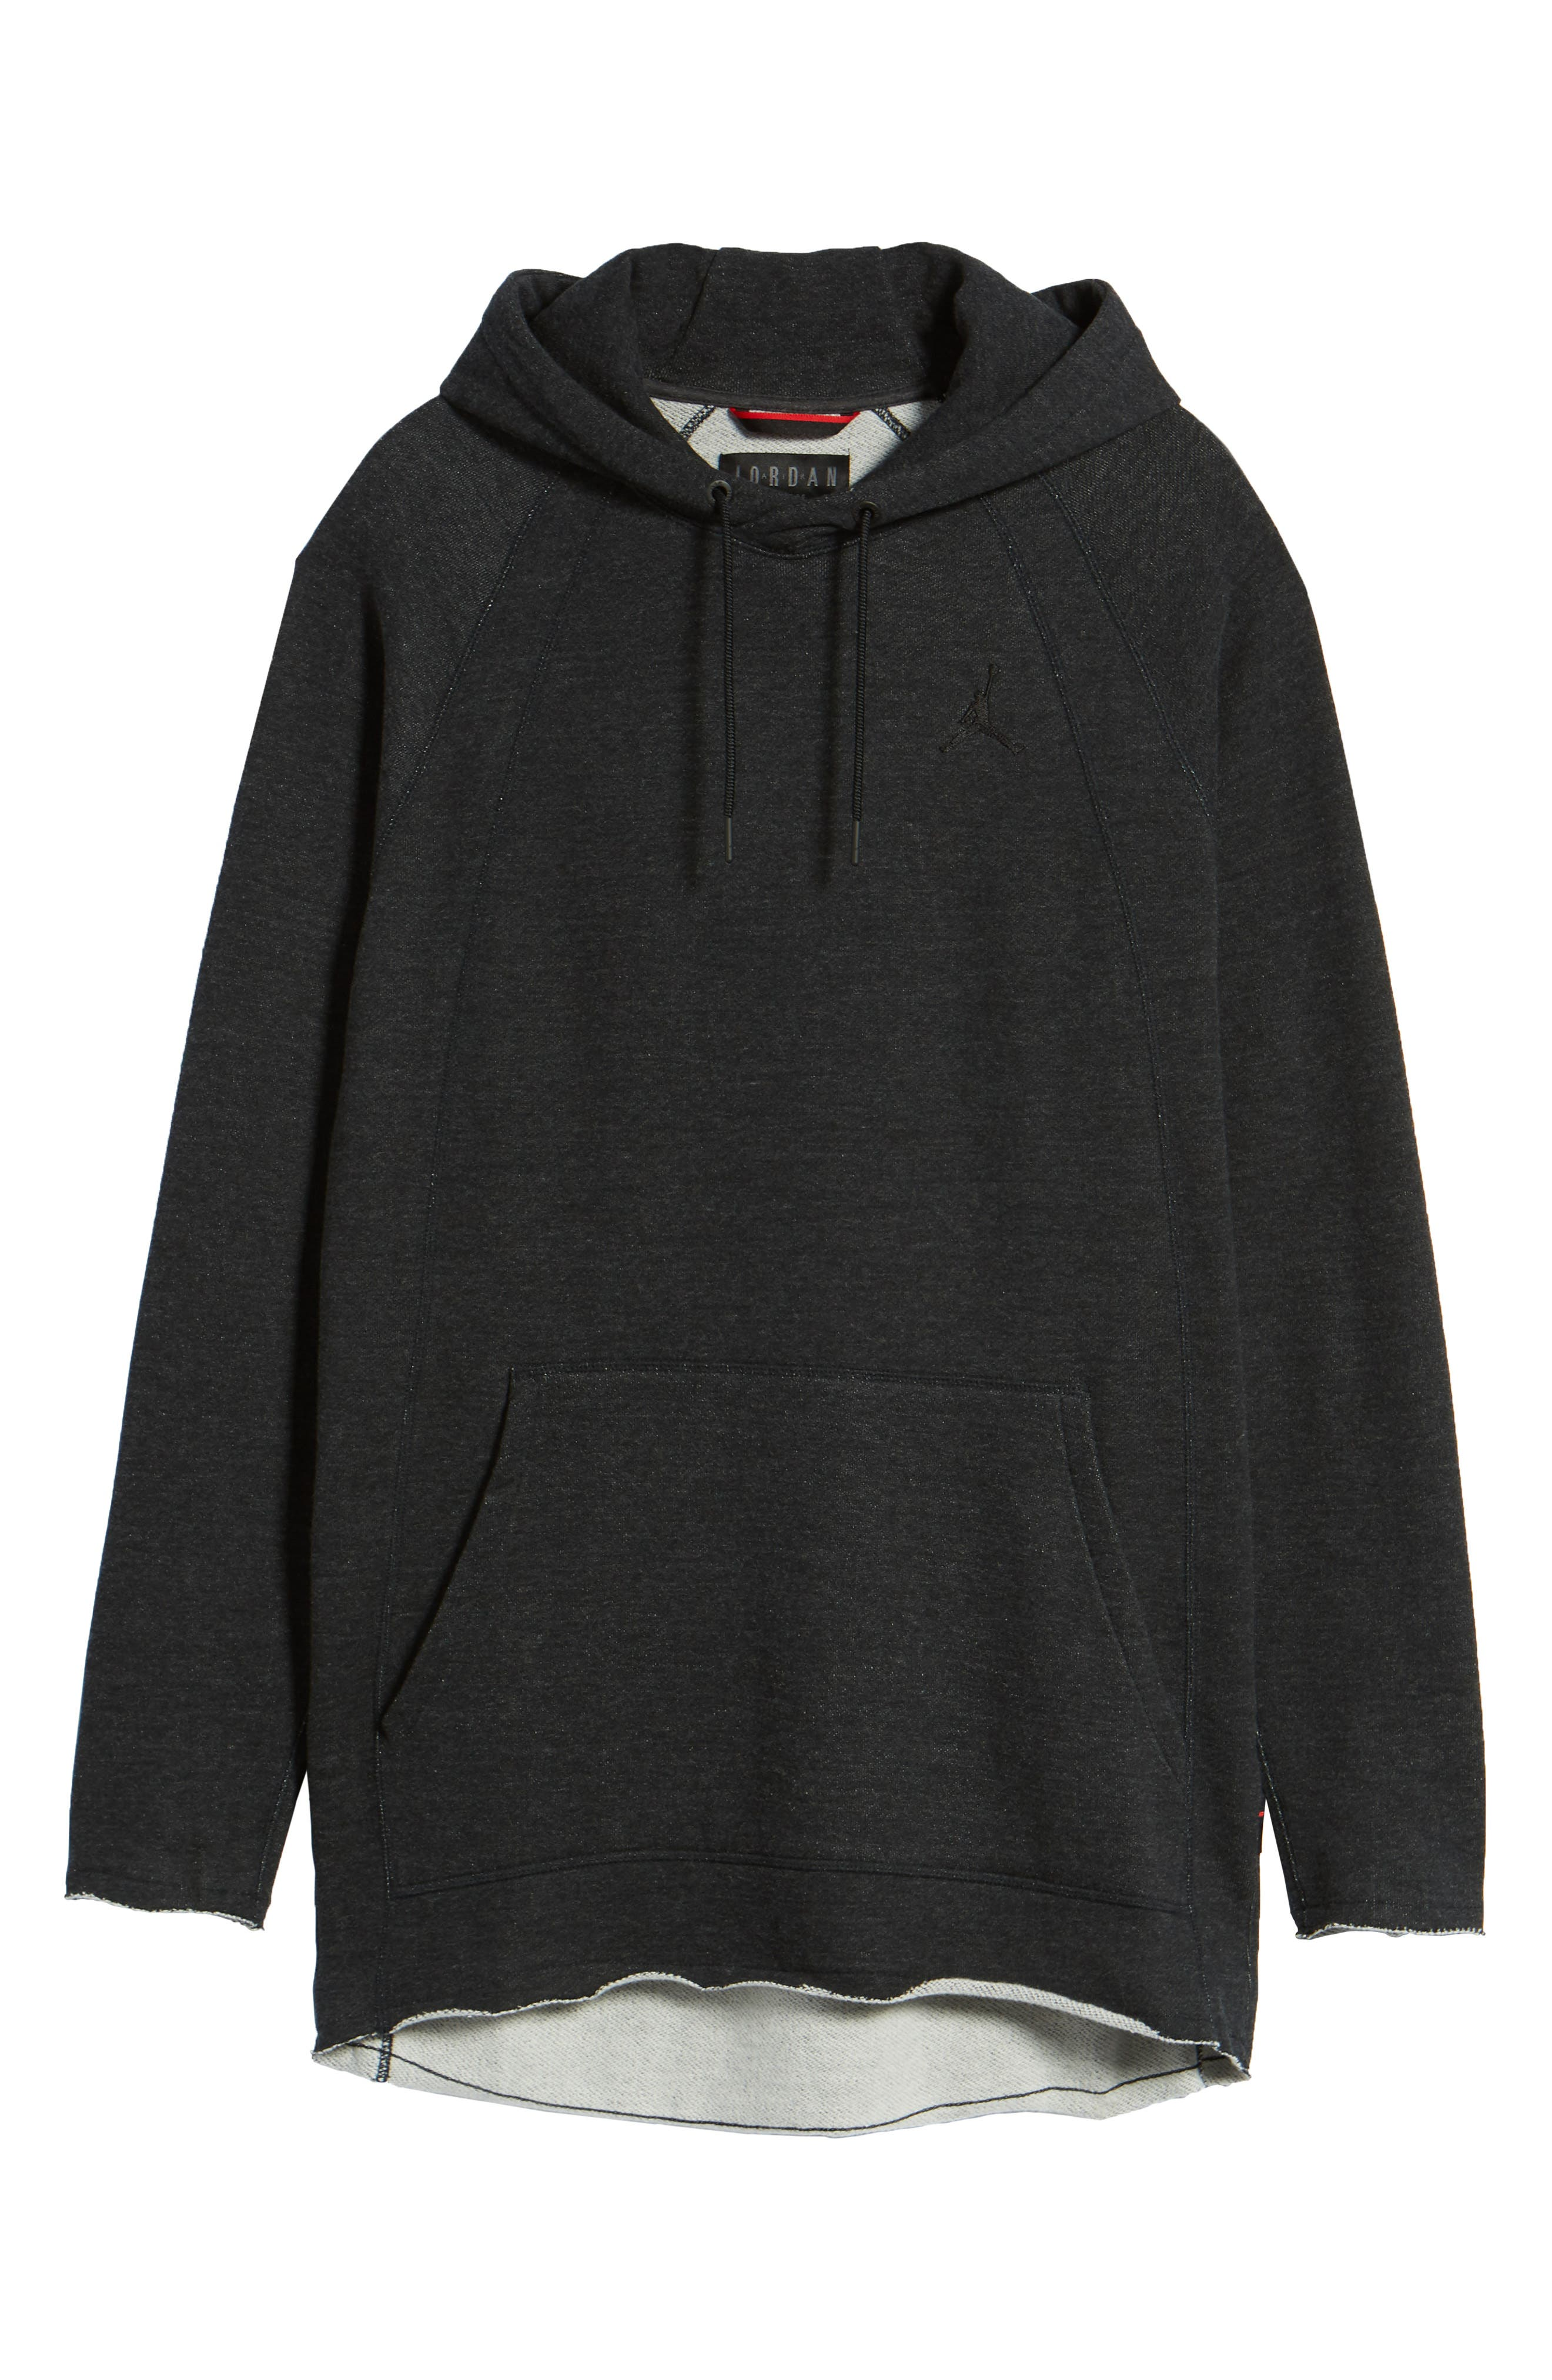 Wings Light French Terry Hoodie,                             Alternate thumbnail 6, color,                             Black Heather/ Black